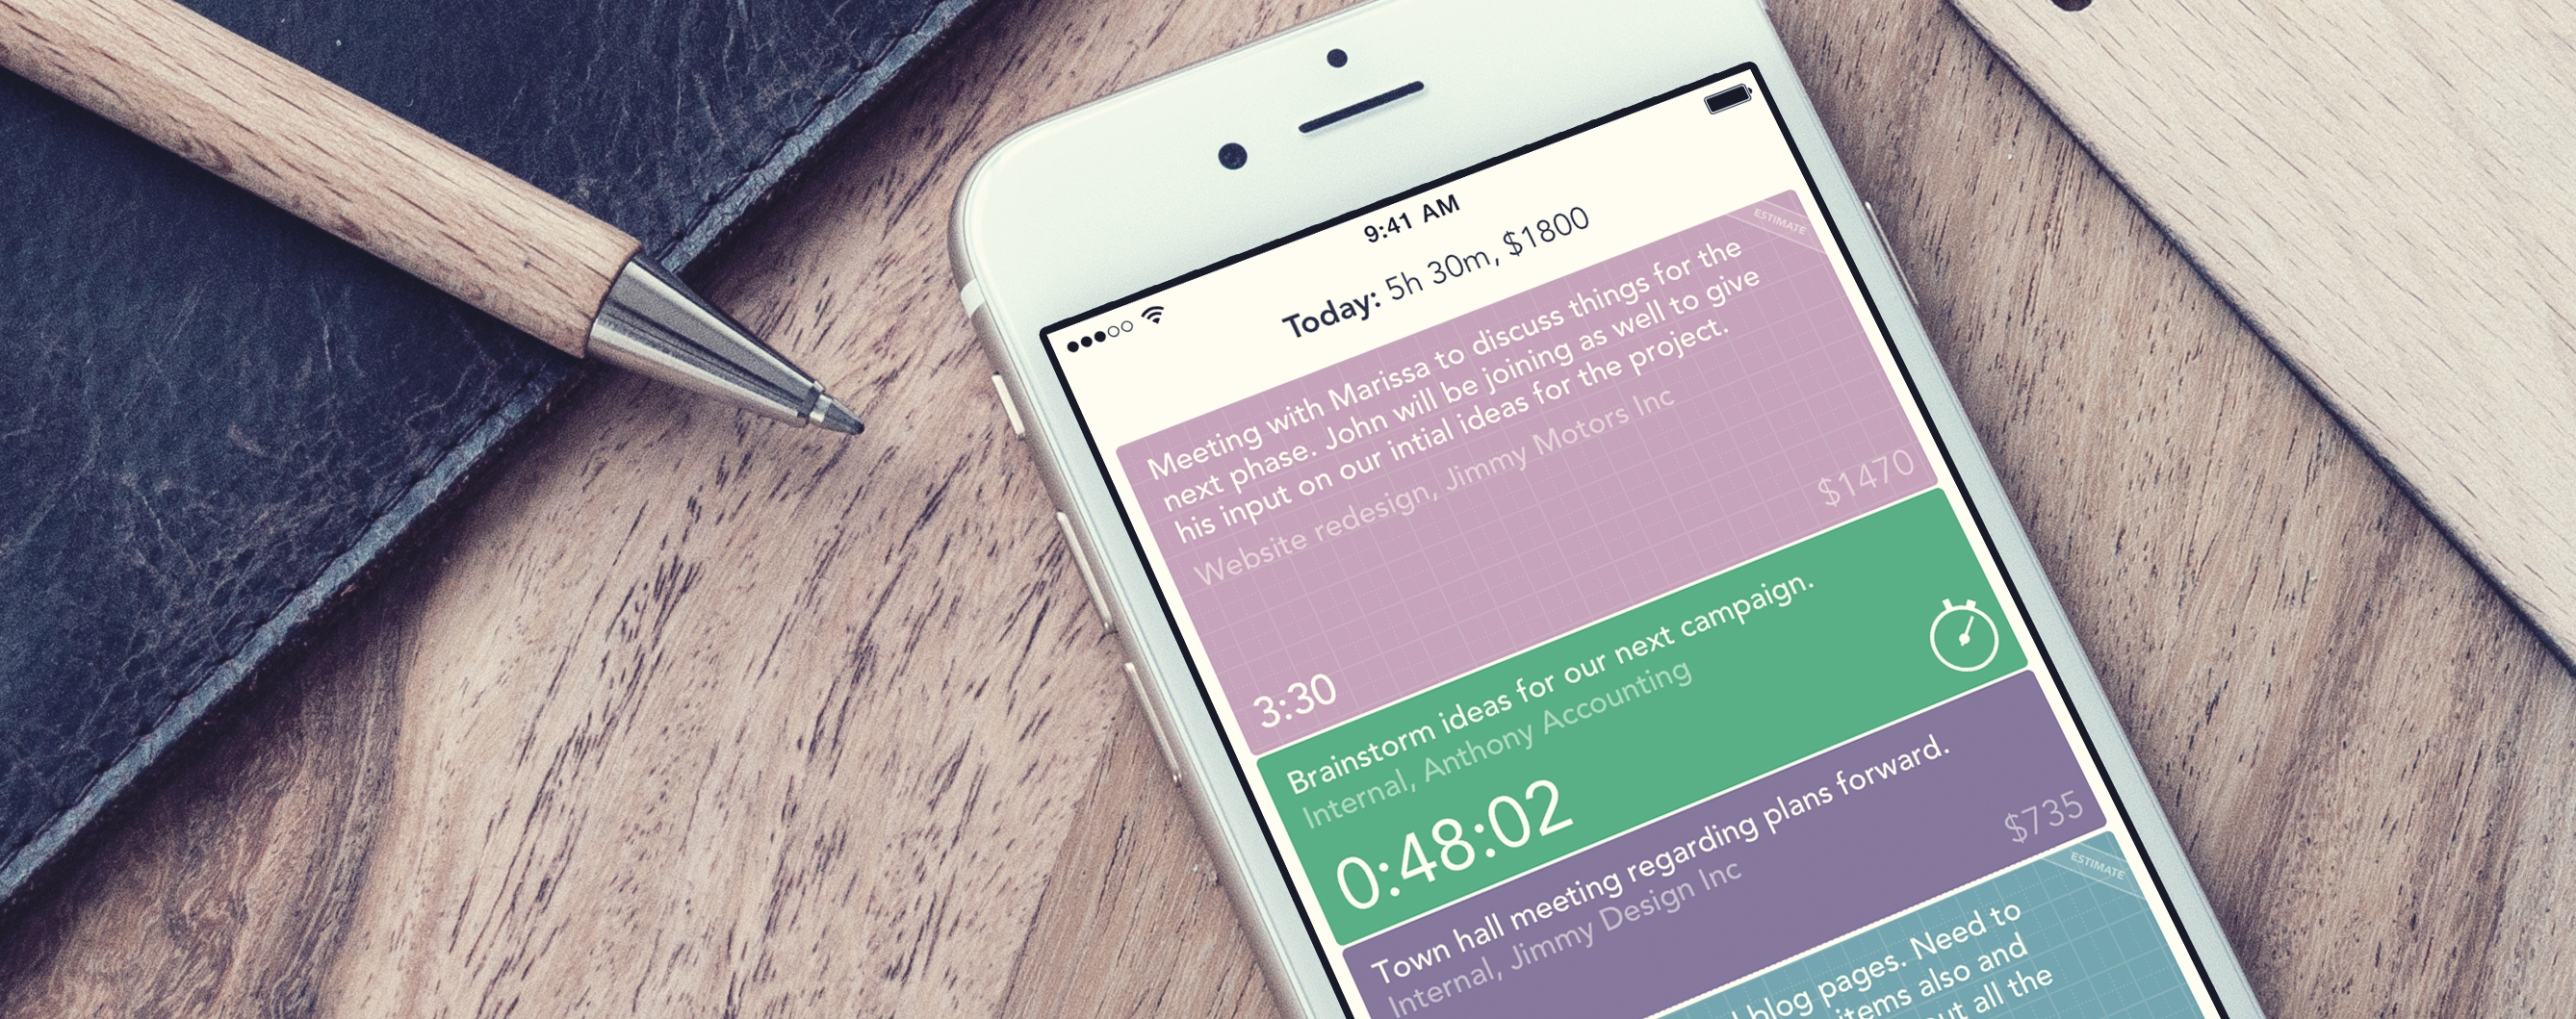 Timely for iPhone Gets Huge Overhaul to Help Kill Timesheets